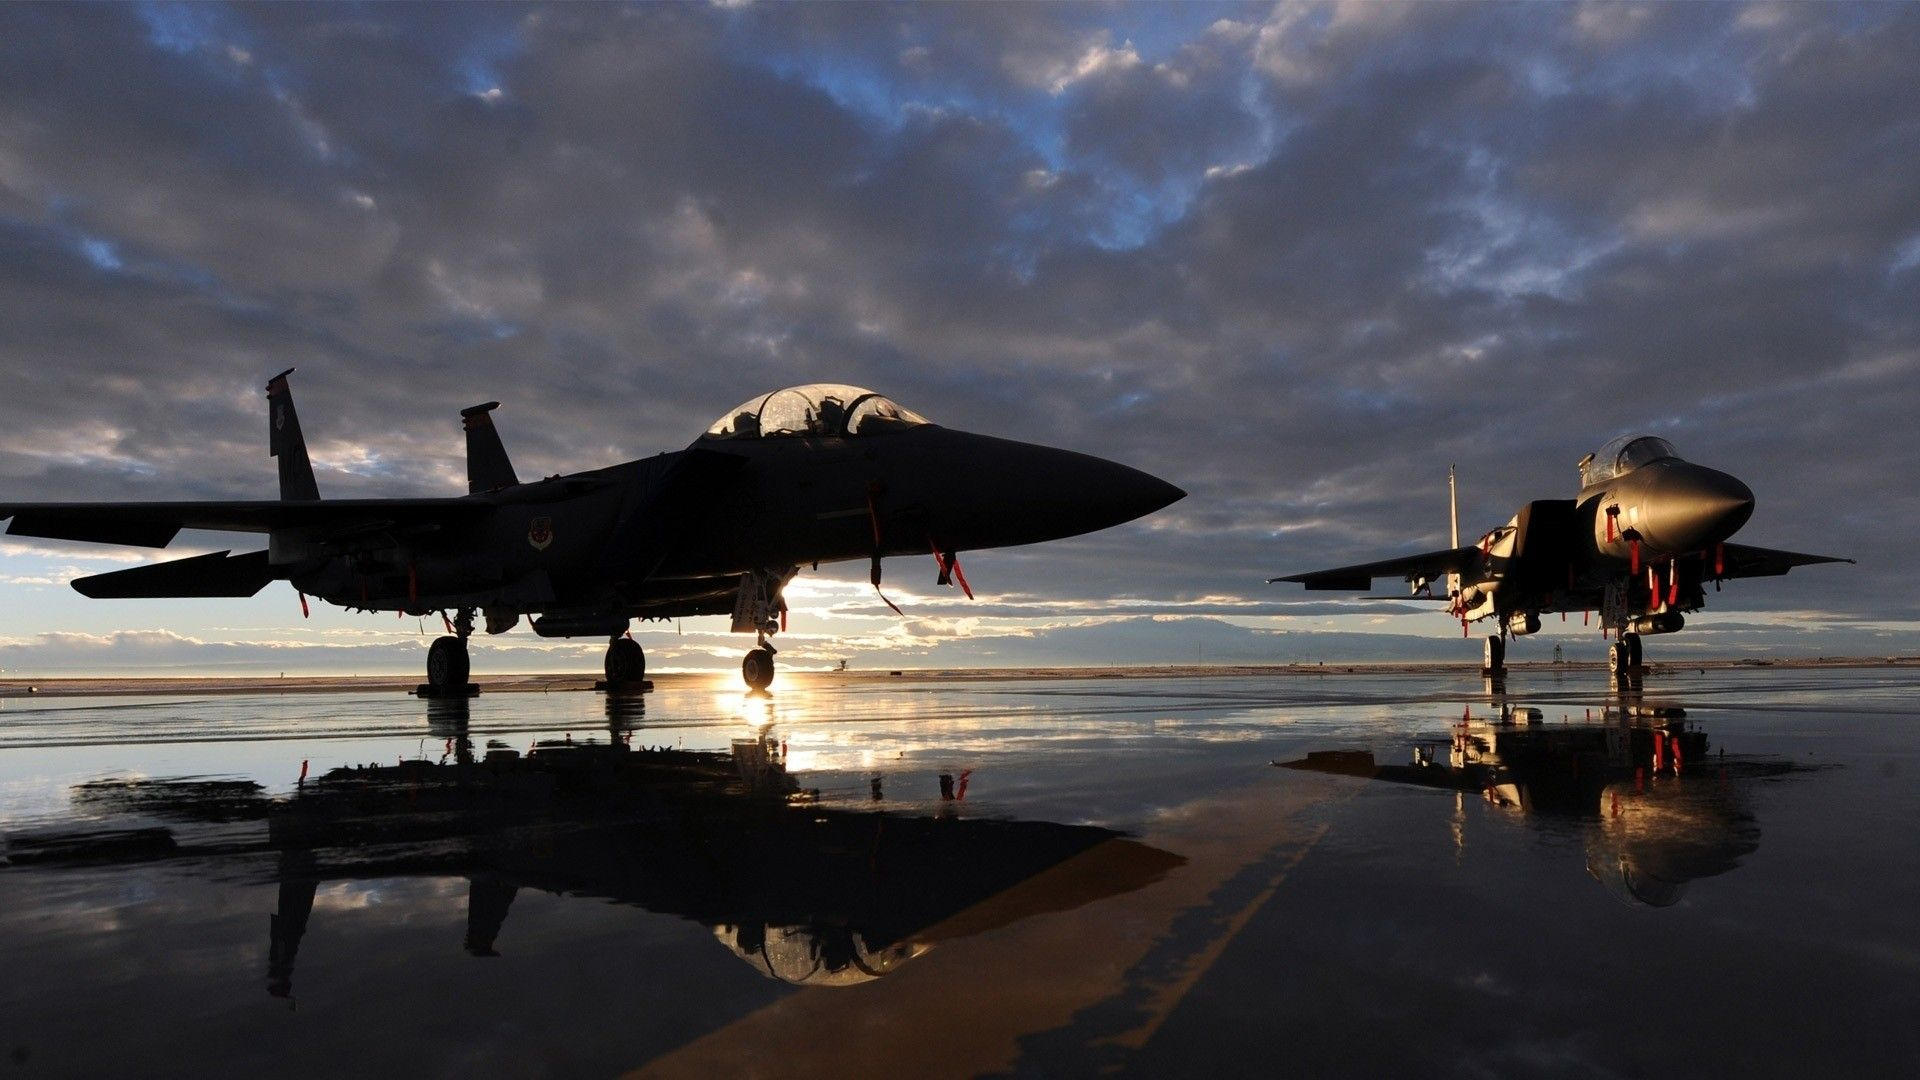 two-us-military-aircraft-jet-eagle-f15-at-dawn-1920x1080